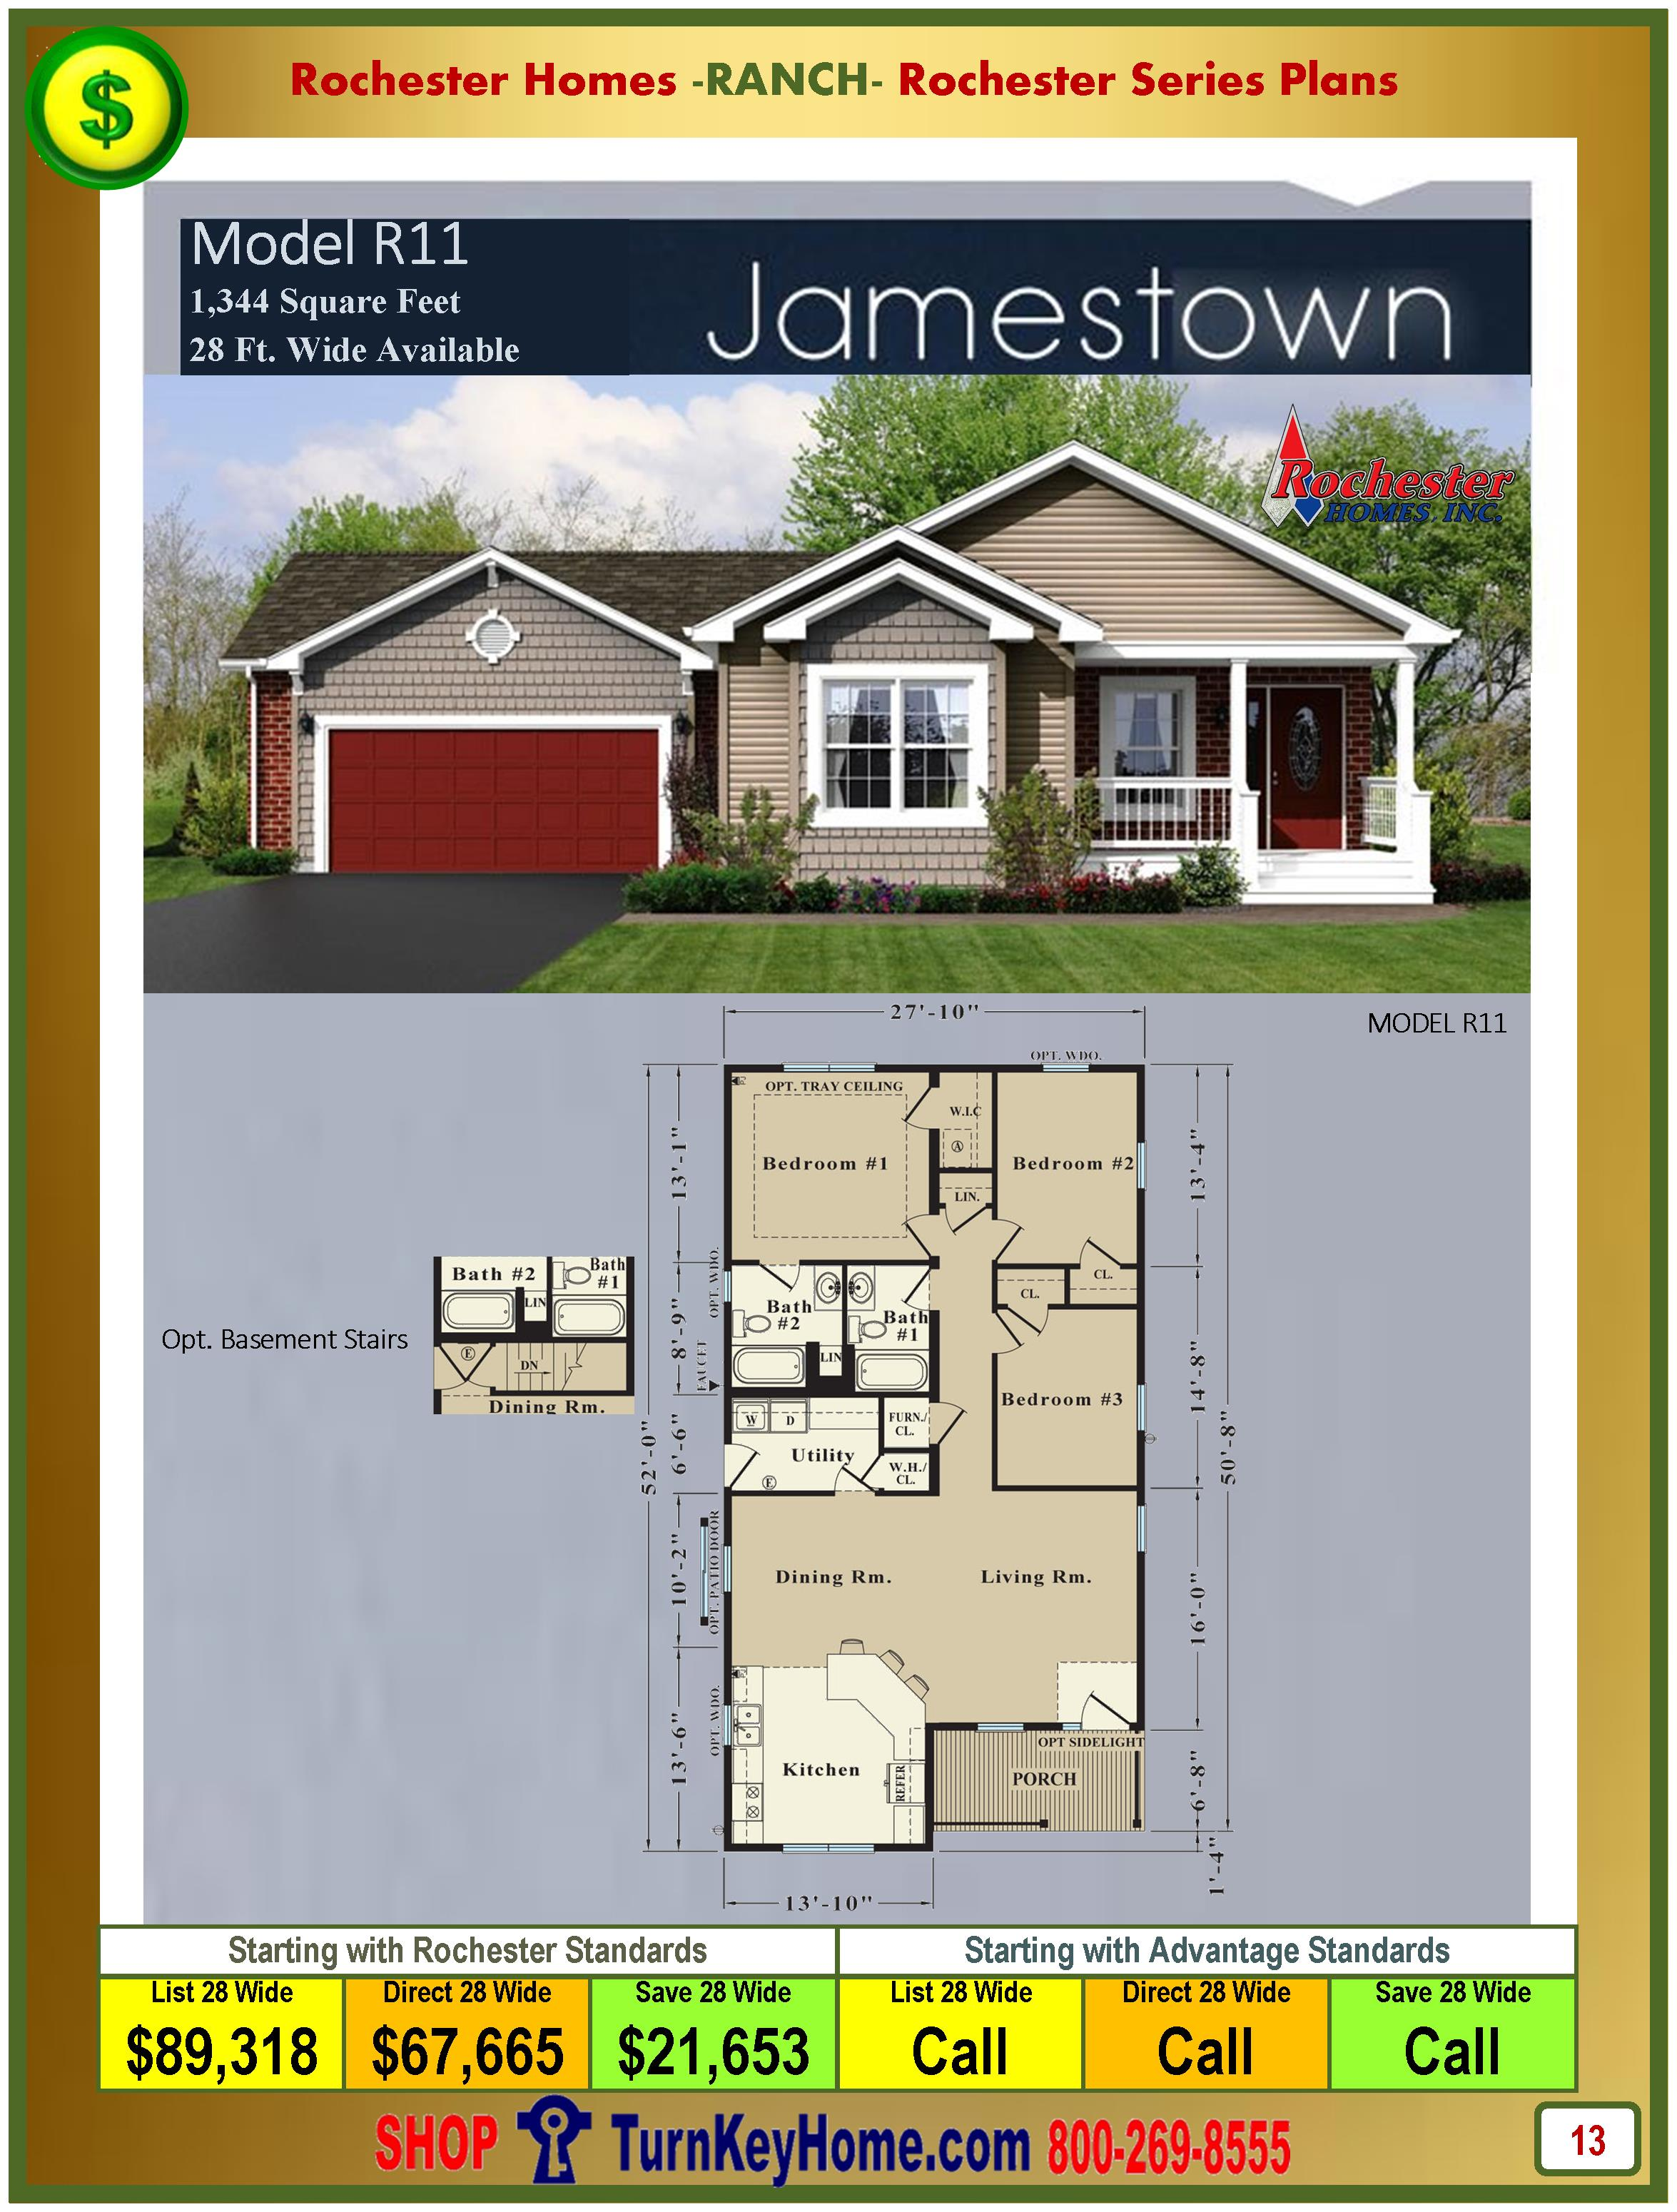 jamestown rochester modular home model r11 ranch plan price